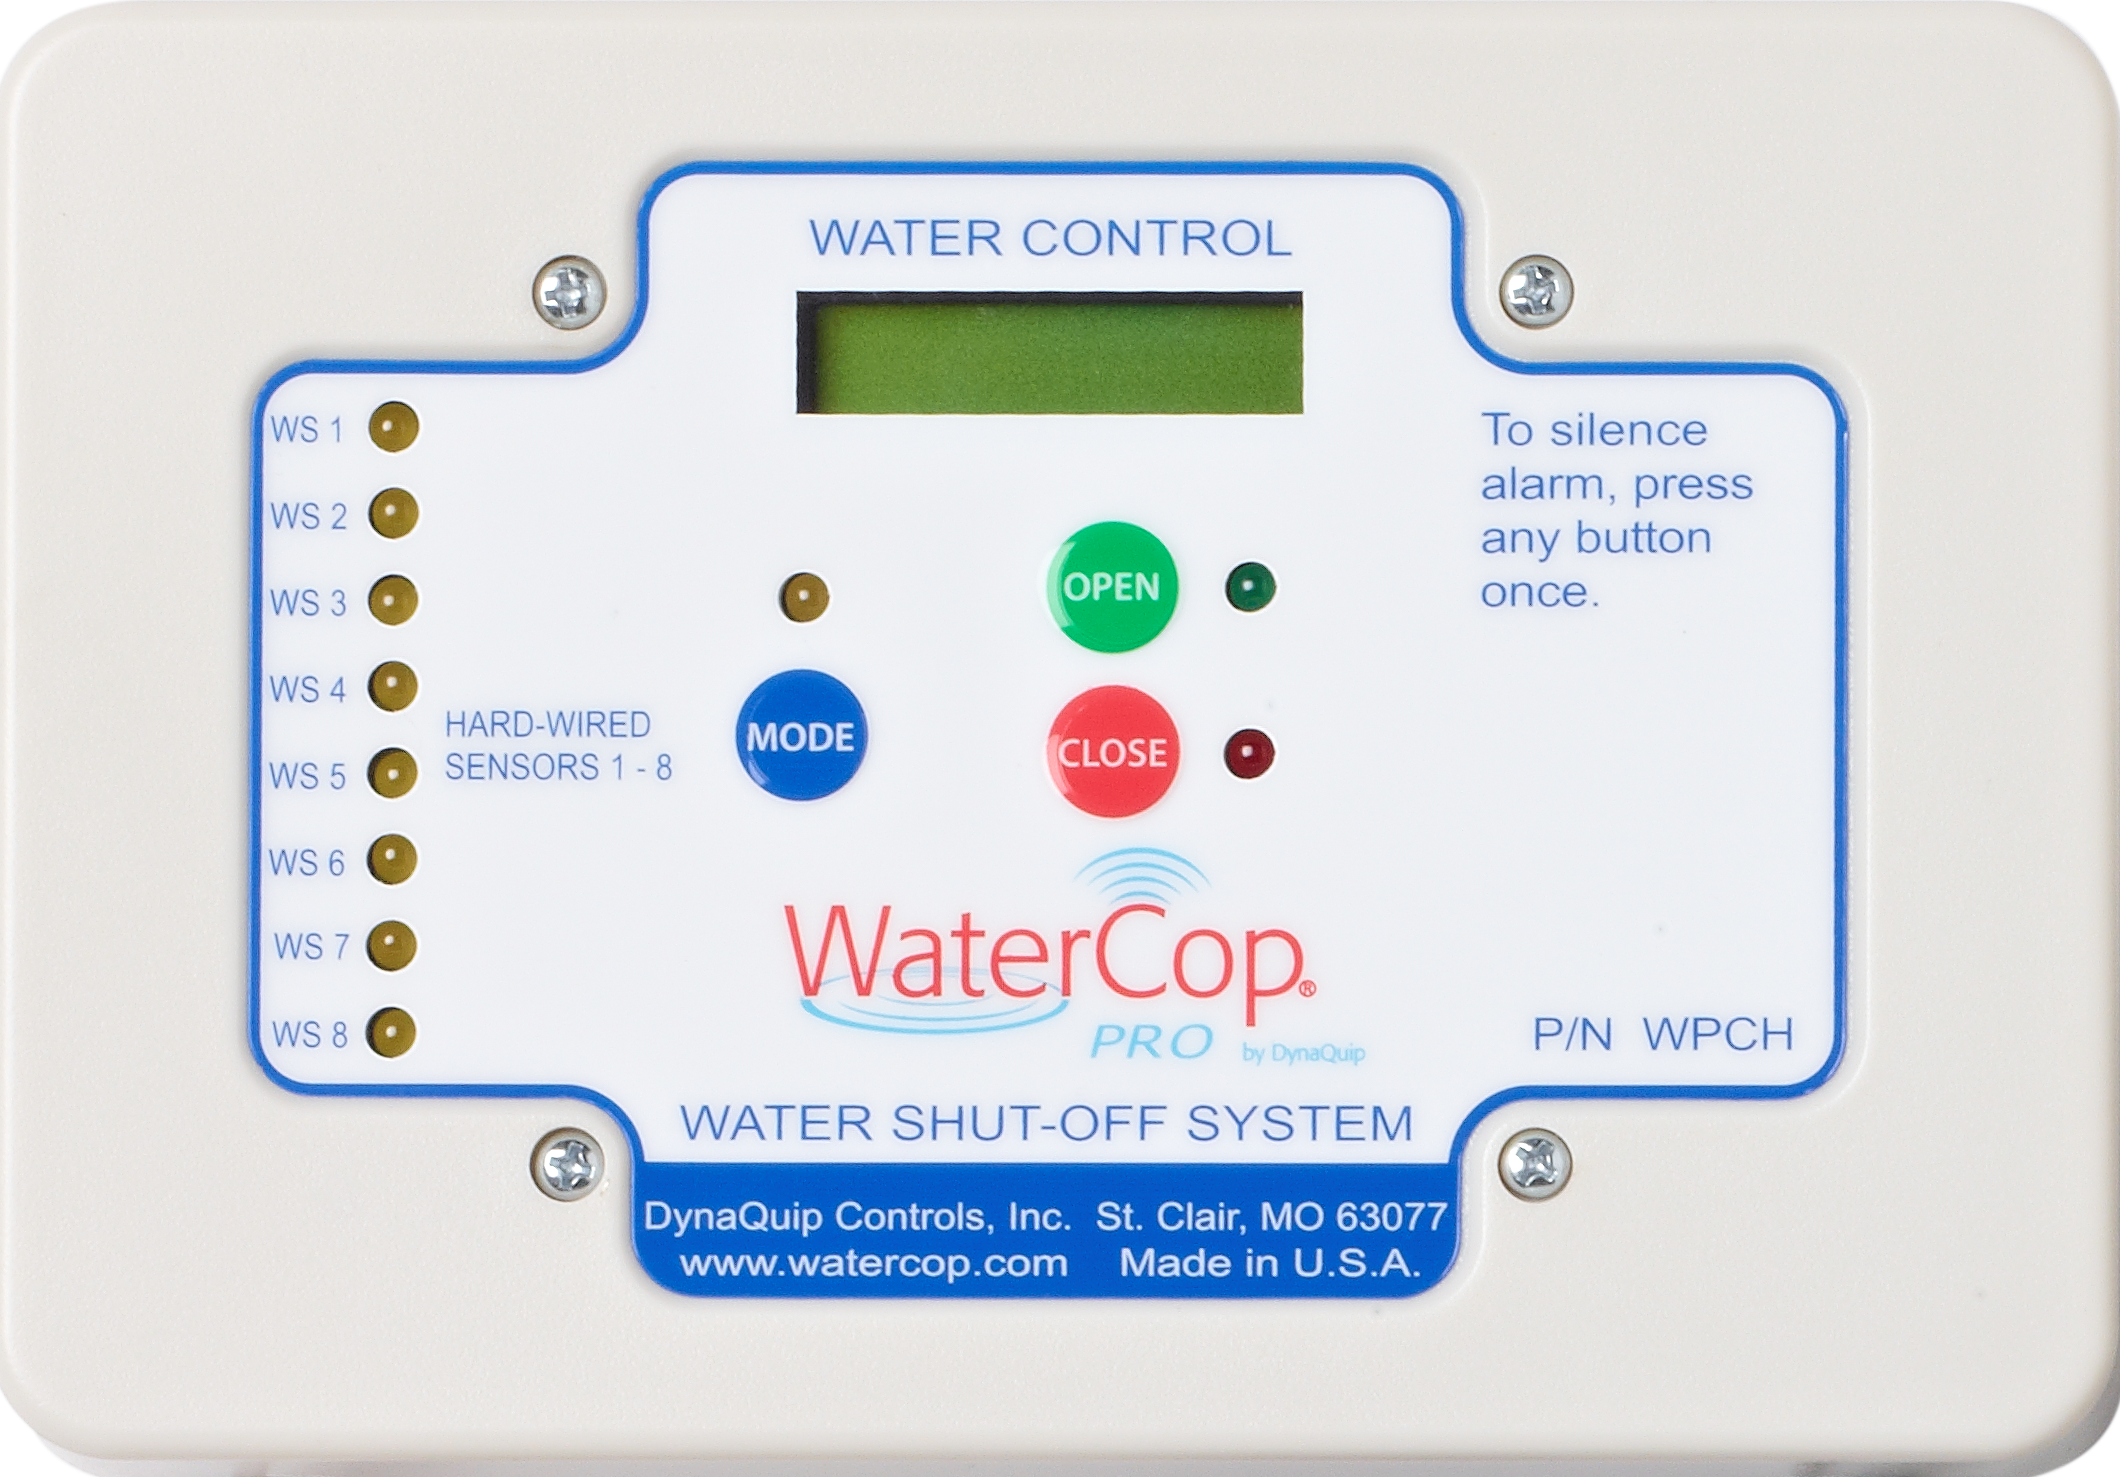 WaterCop water shutoff system